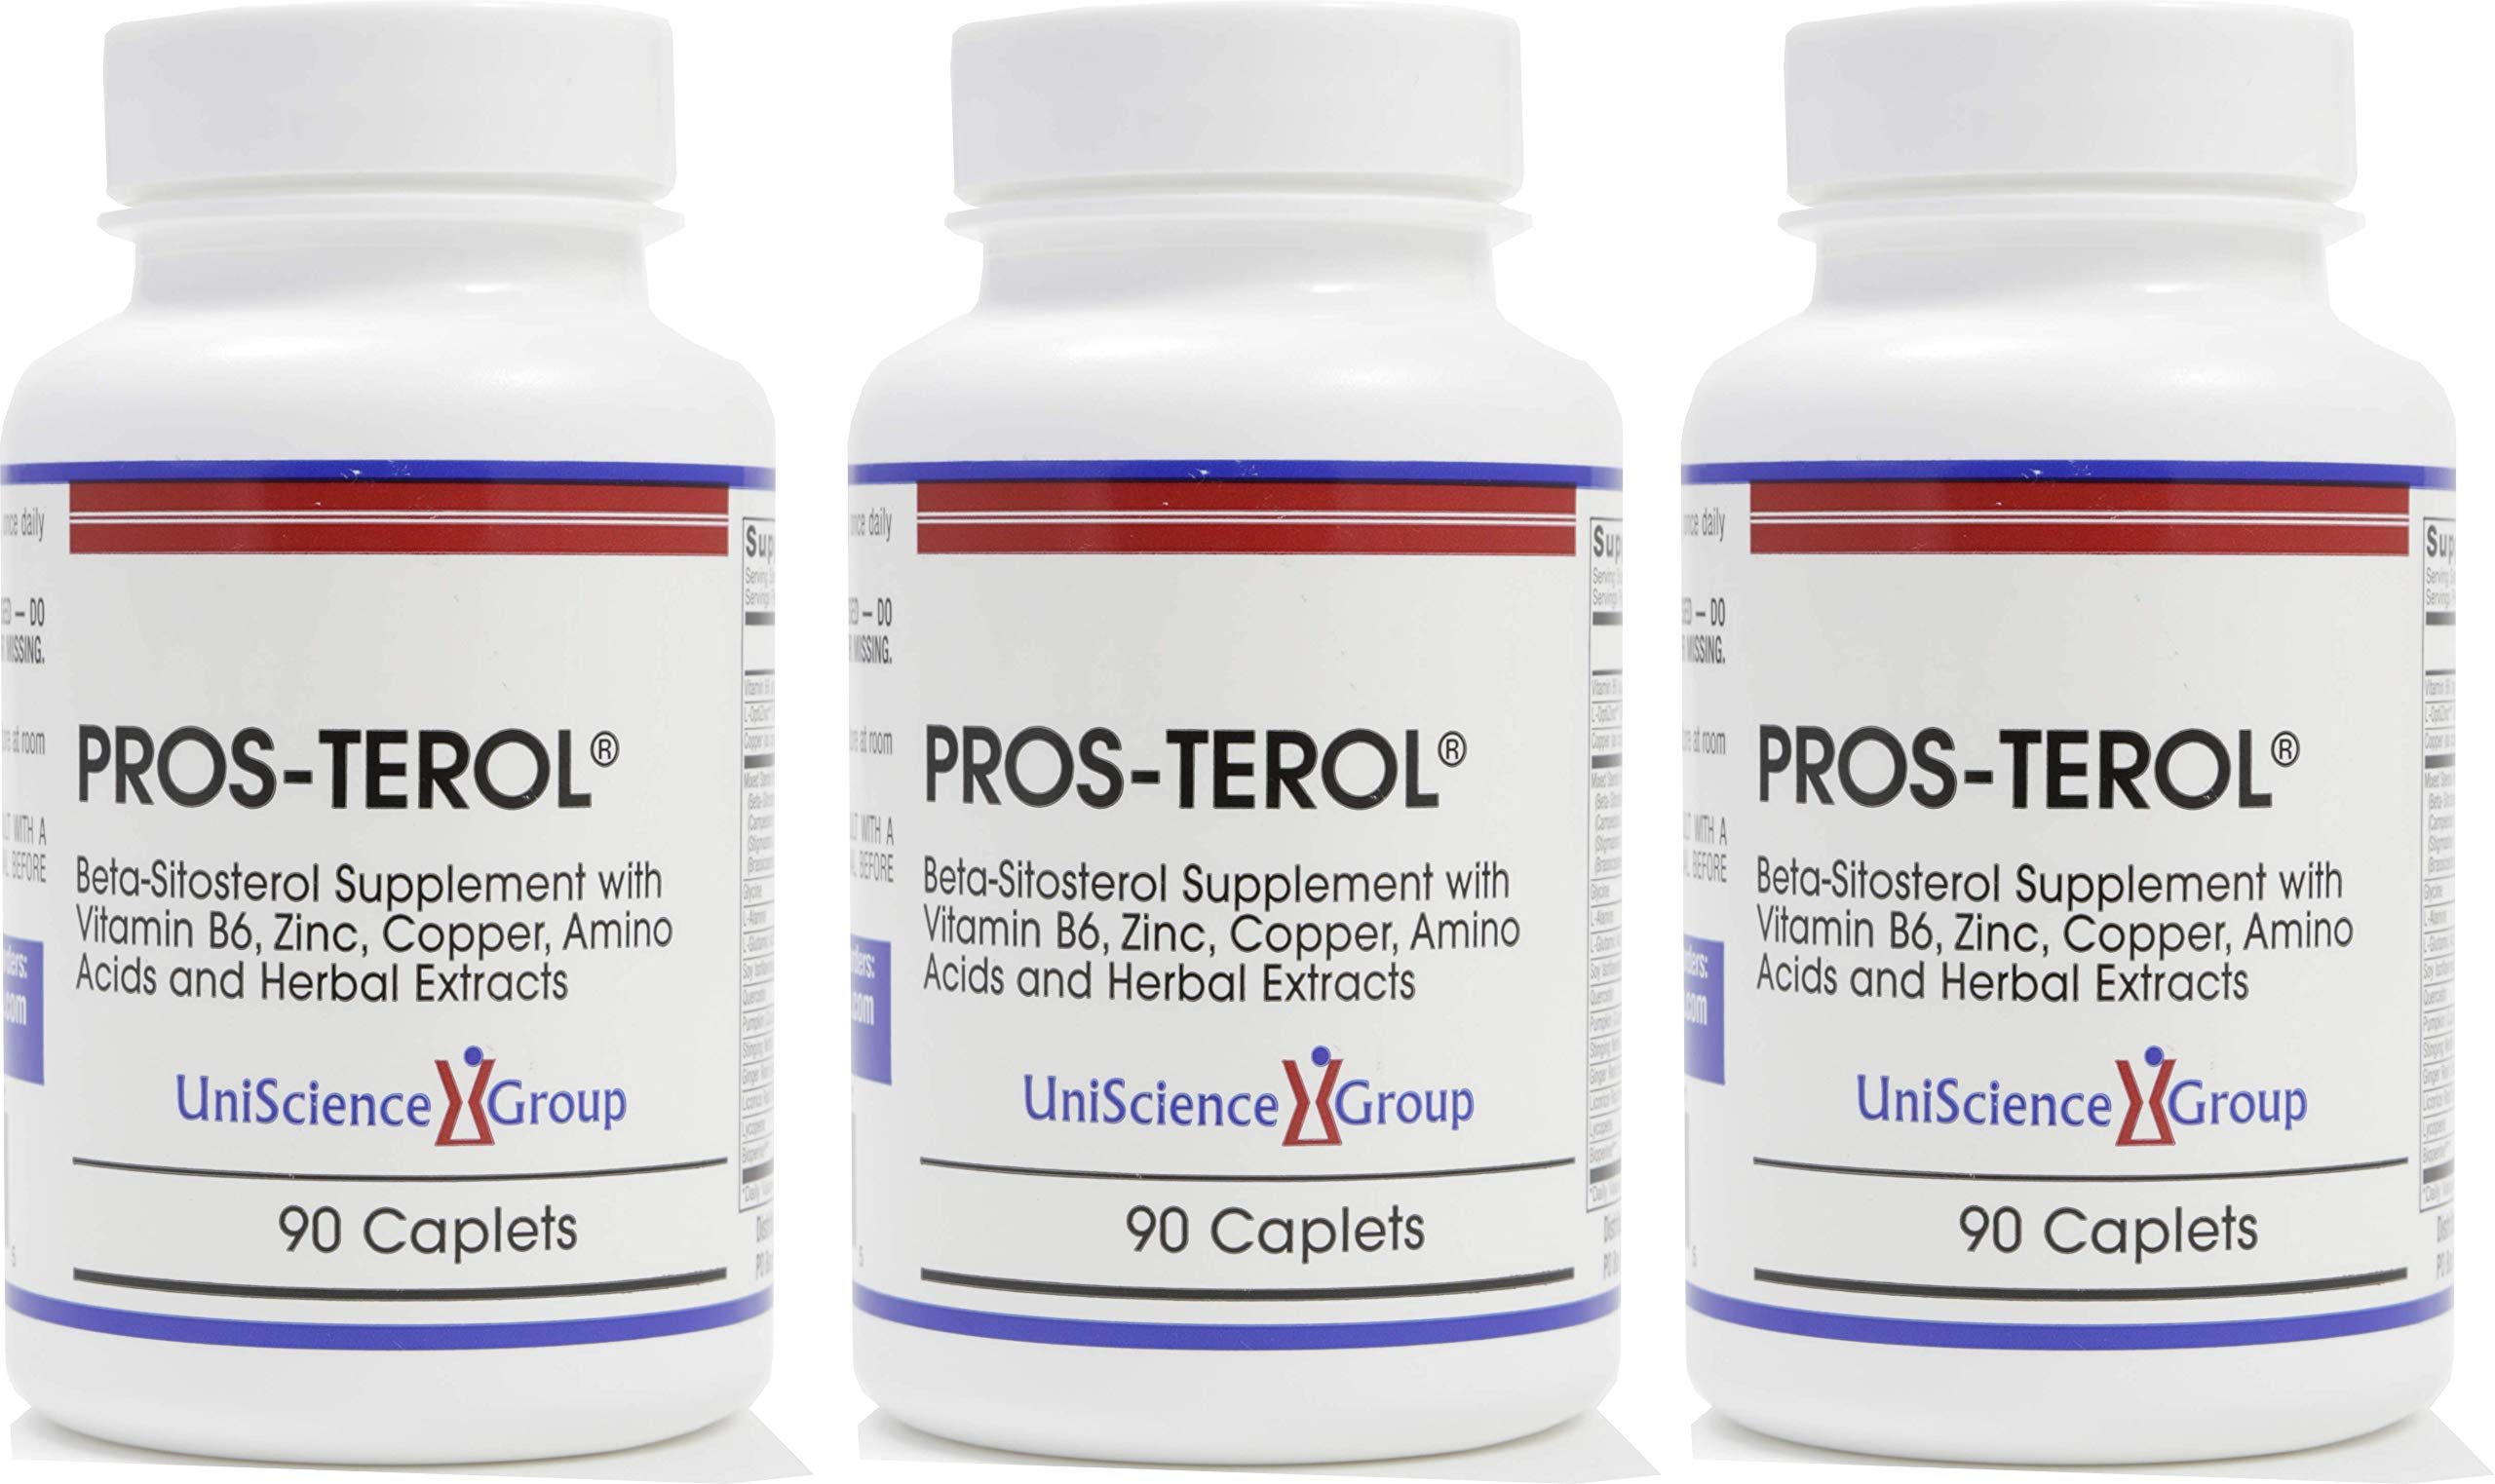 Pros-TEROL (3 bottle kit), Prostate Relief with 900 mg Plant Sterols with Pumpkin Seed, Stinging Nettle Root, Ginger Root, Licorice Root Extracts 90 Caplets by UniScience Group, Inc. (Image #1)